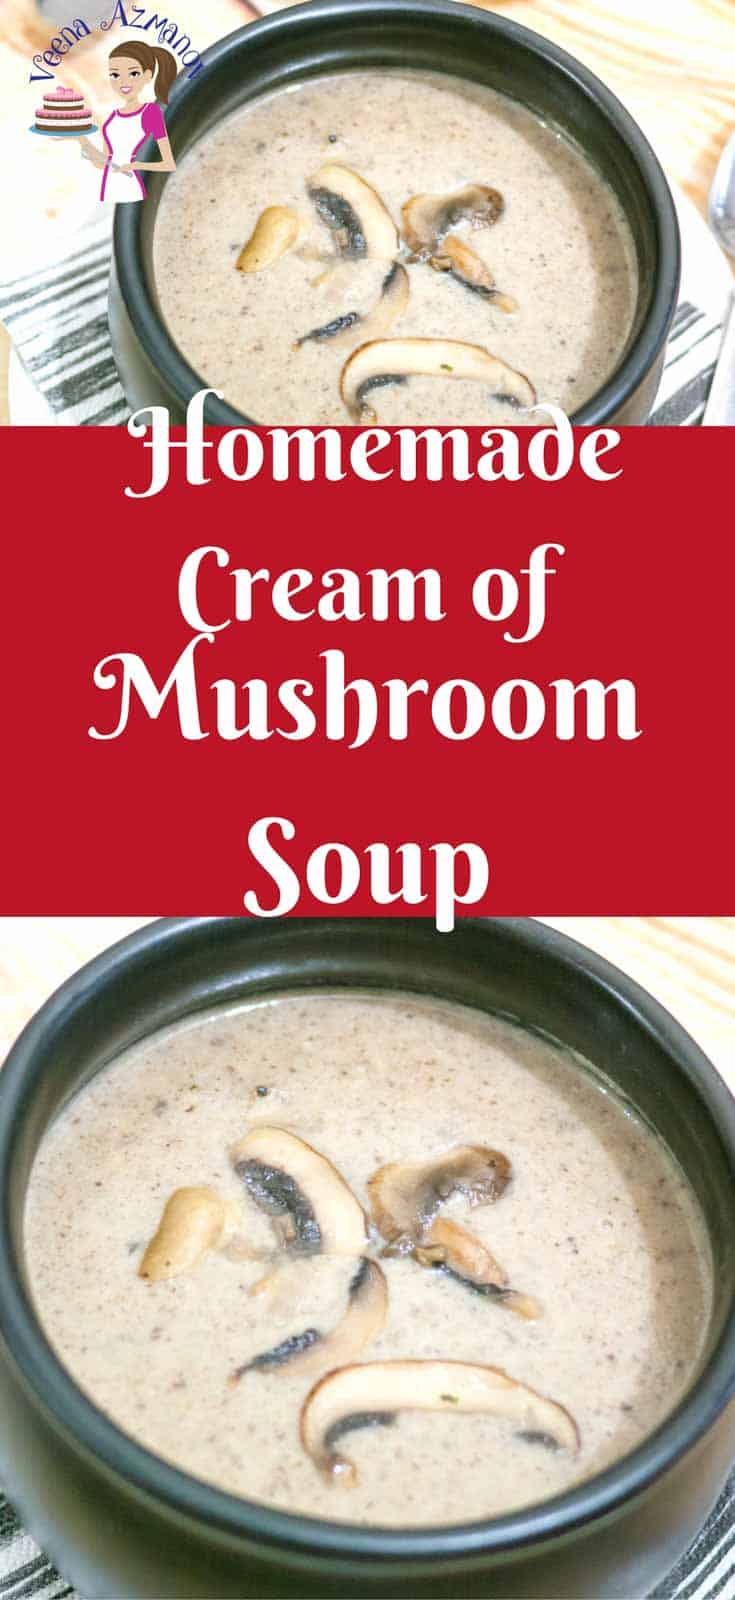 Simple, earthy, hearty, flavorful and fulfilling this homemade cream of mushroom soup is so easy to make with just a few simple ingredients you definitely have on hand. The best part it takes only 30 minutes to prepare, add a side of salad and you have dinner served.